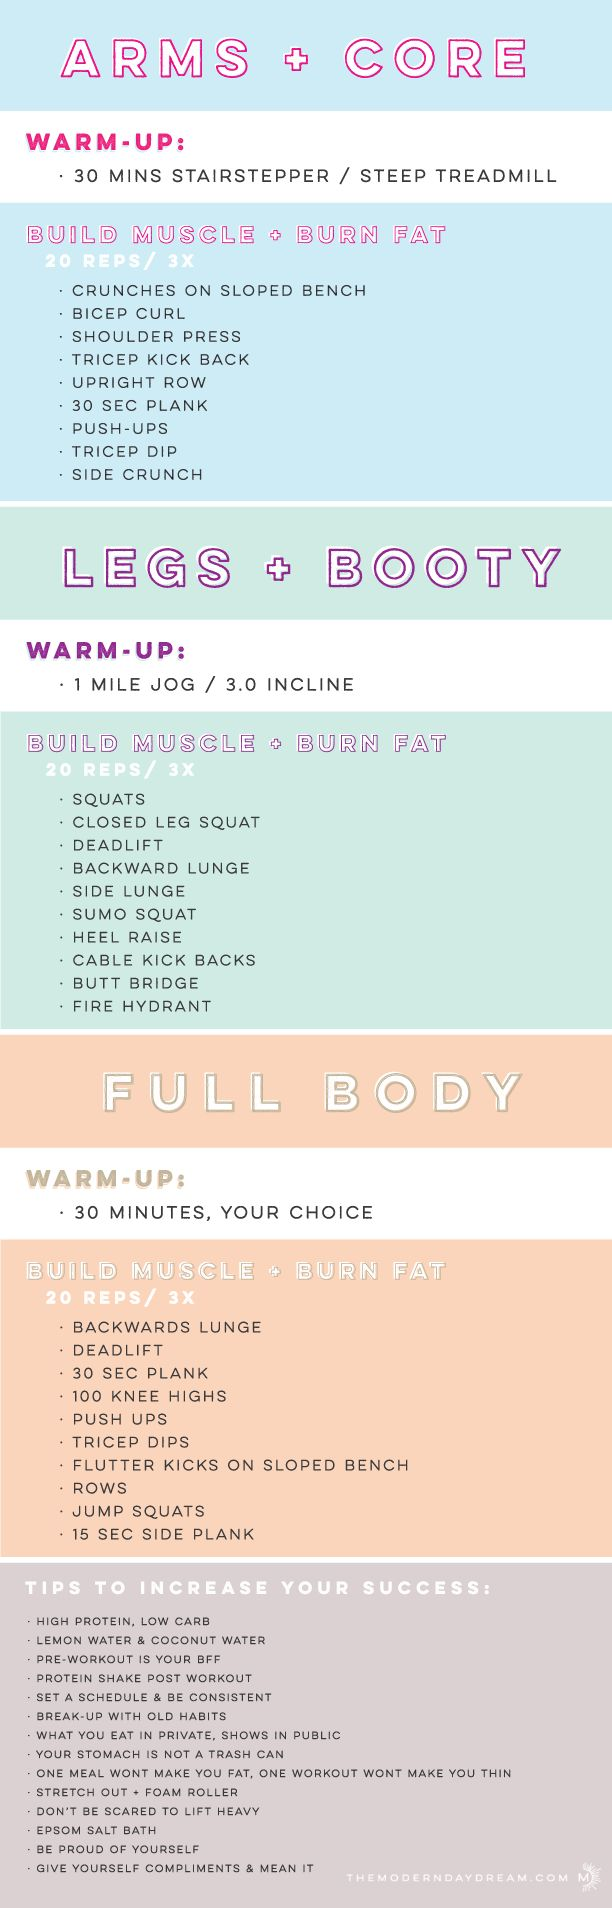 Full Body Workout Plan // In need of a detox? Get 10% off your teatox order using our discount code 'Pinterest10' on www.skinnymetea.com.au